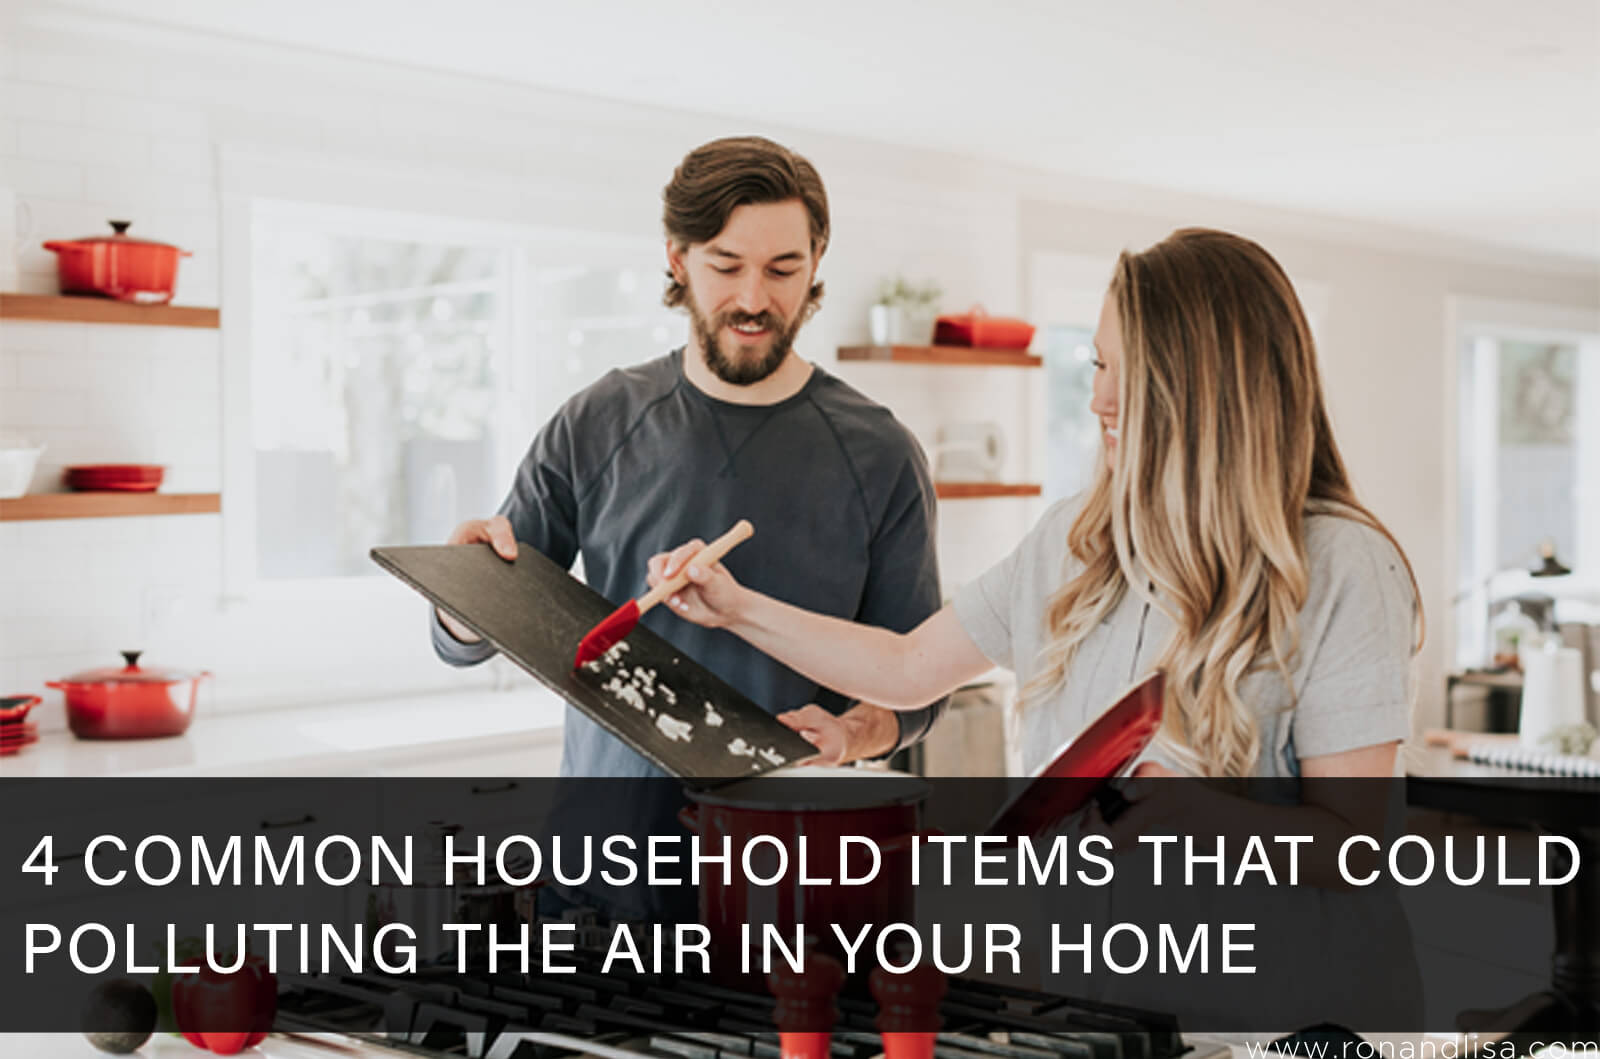 4 Common Household Items That Could Be Polluting the Air in Your Home